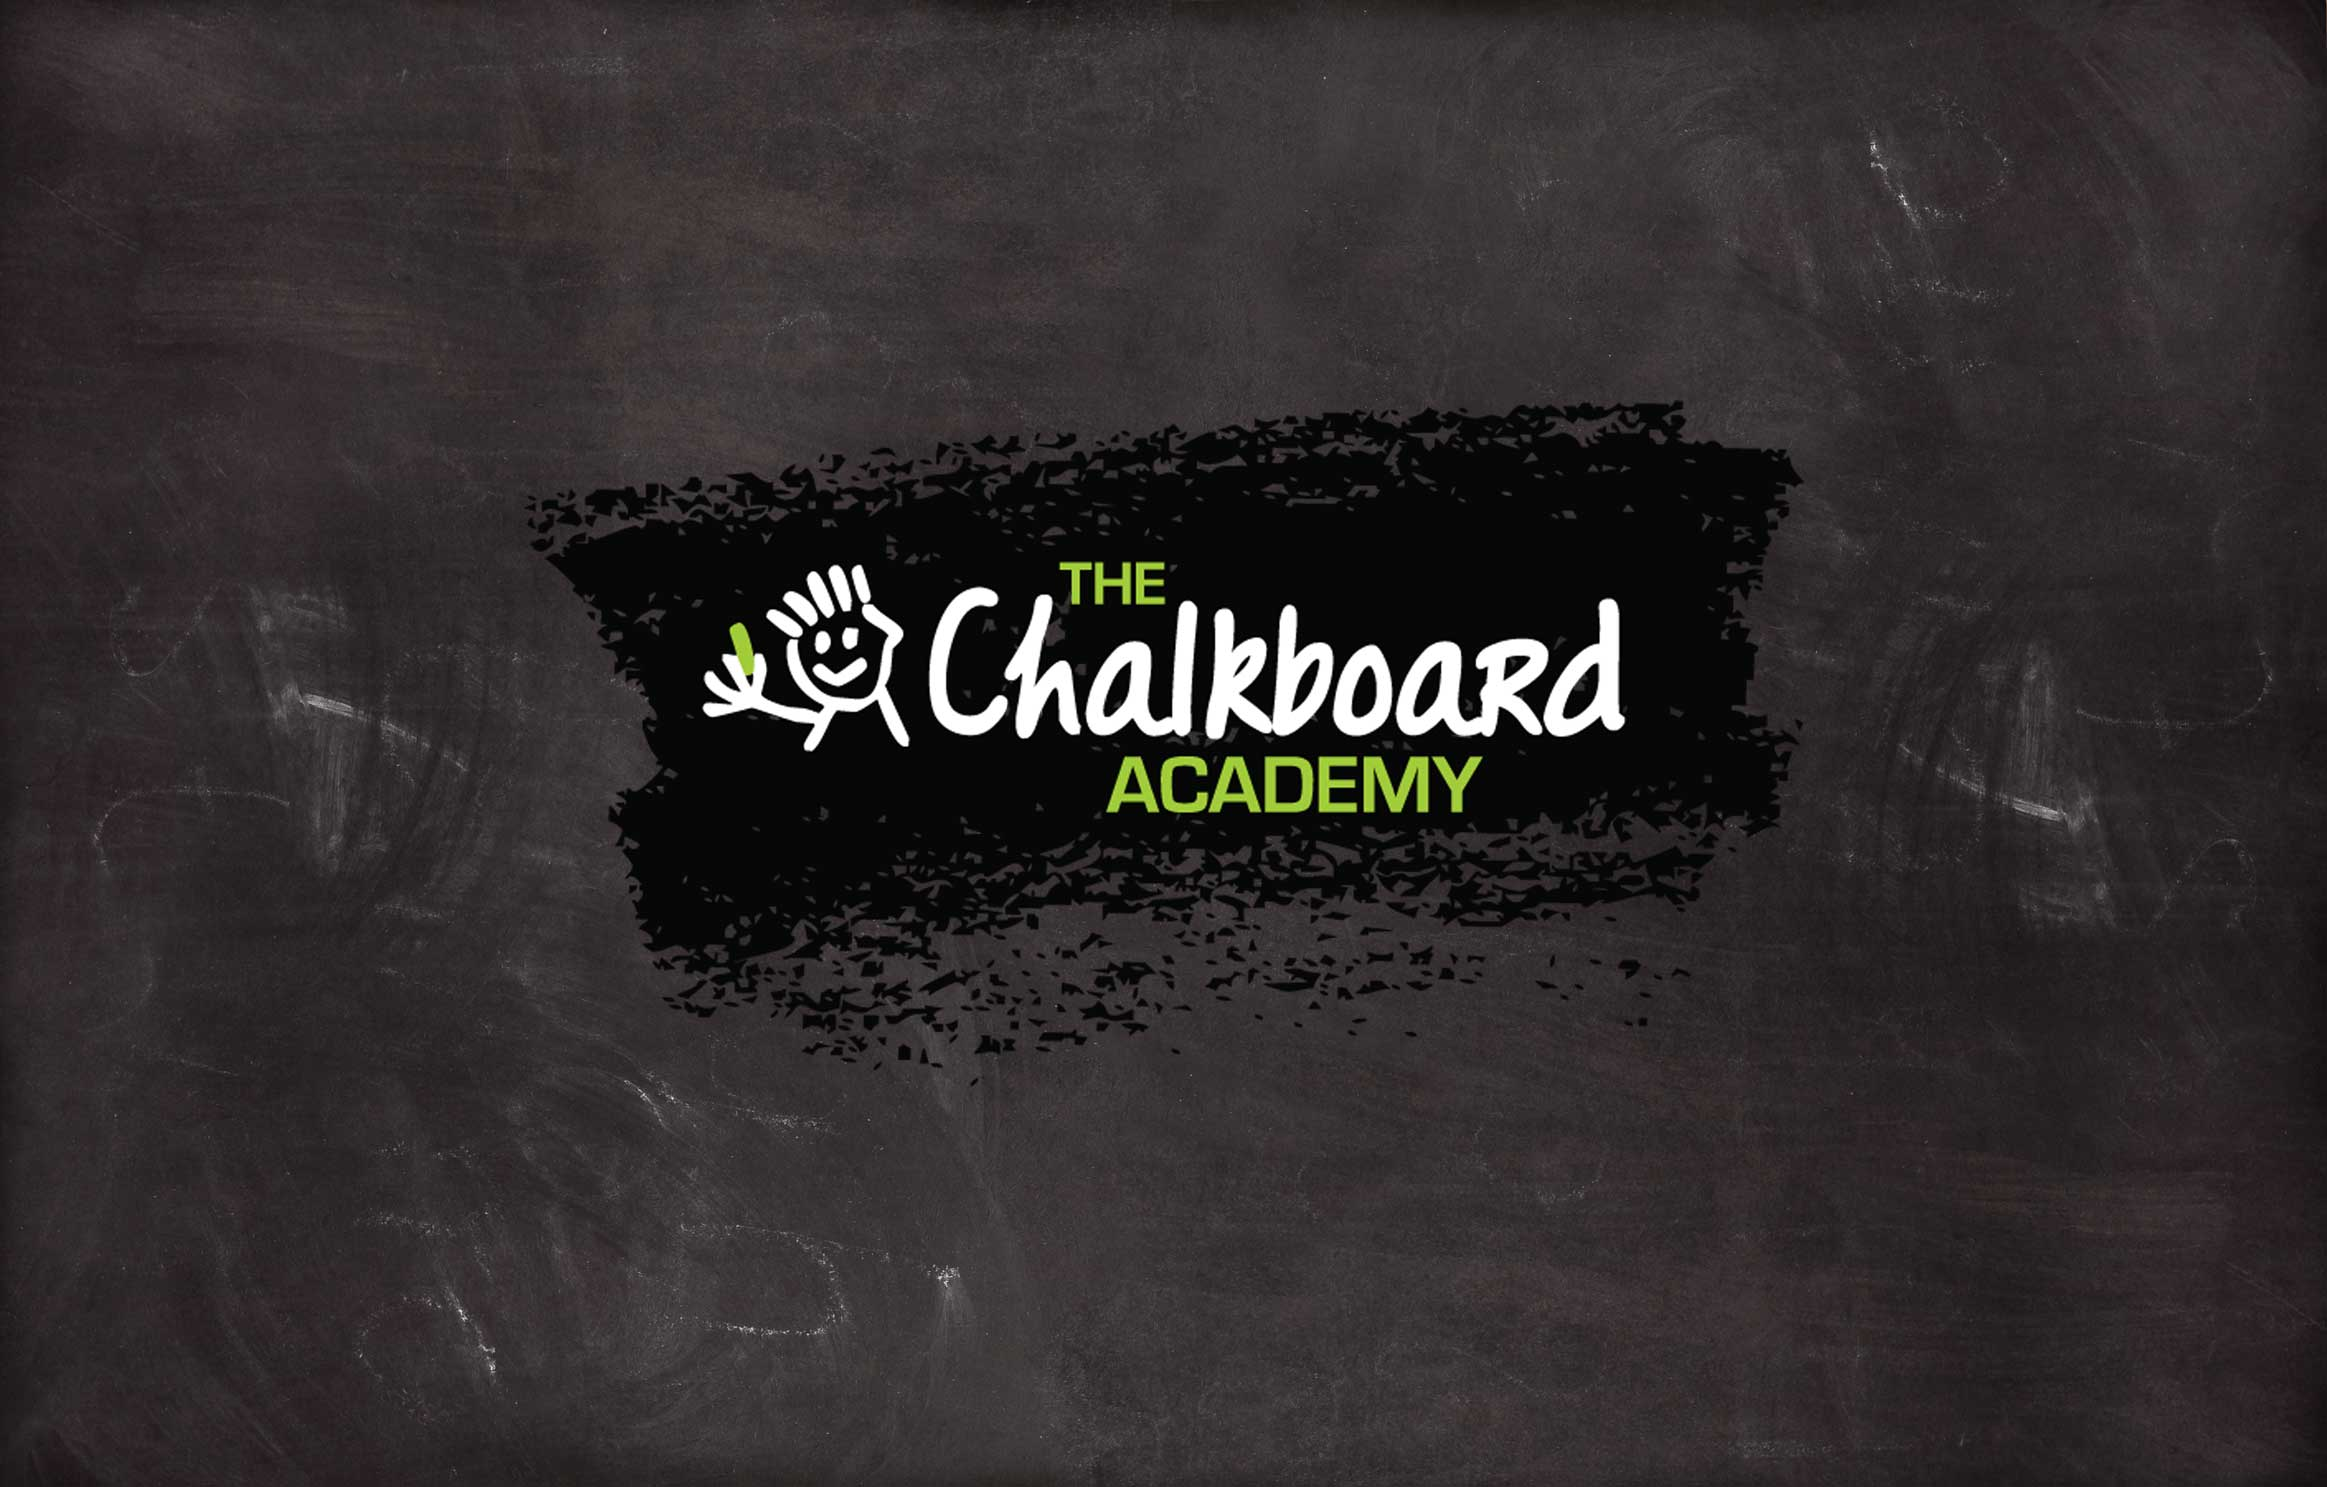 The Chalkboard Academy – Specialist in English Composition